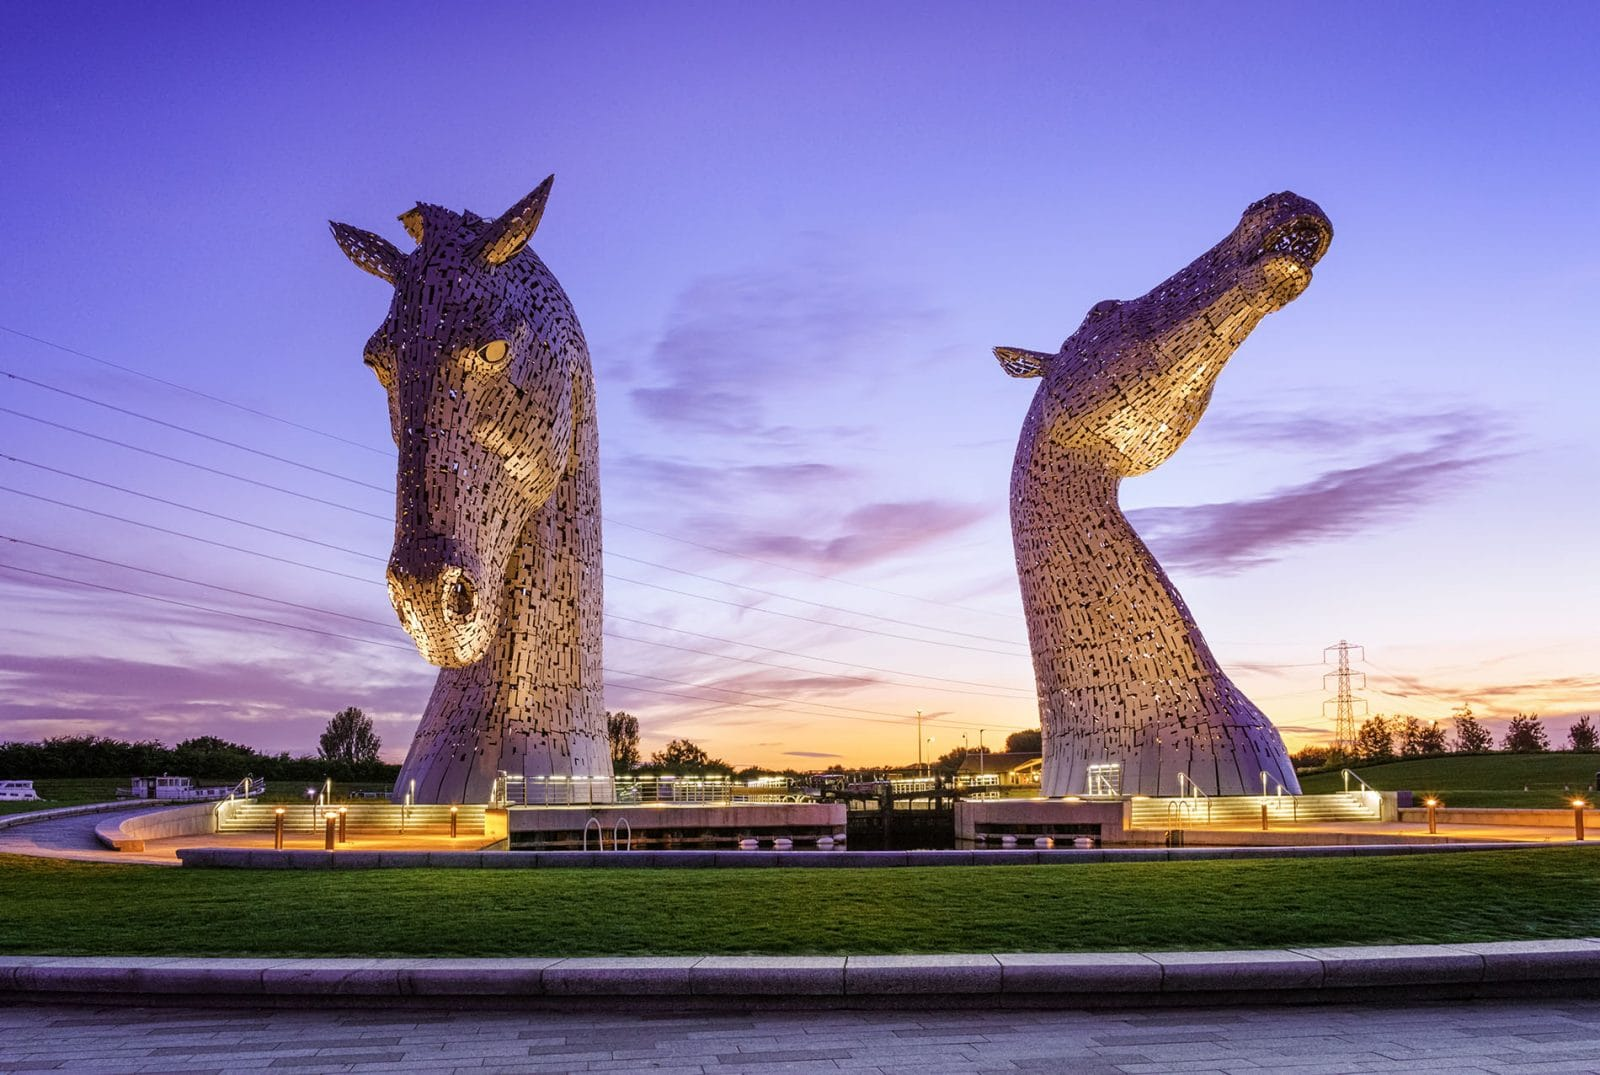 The Kelpies at sunset - Fine art print